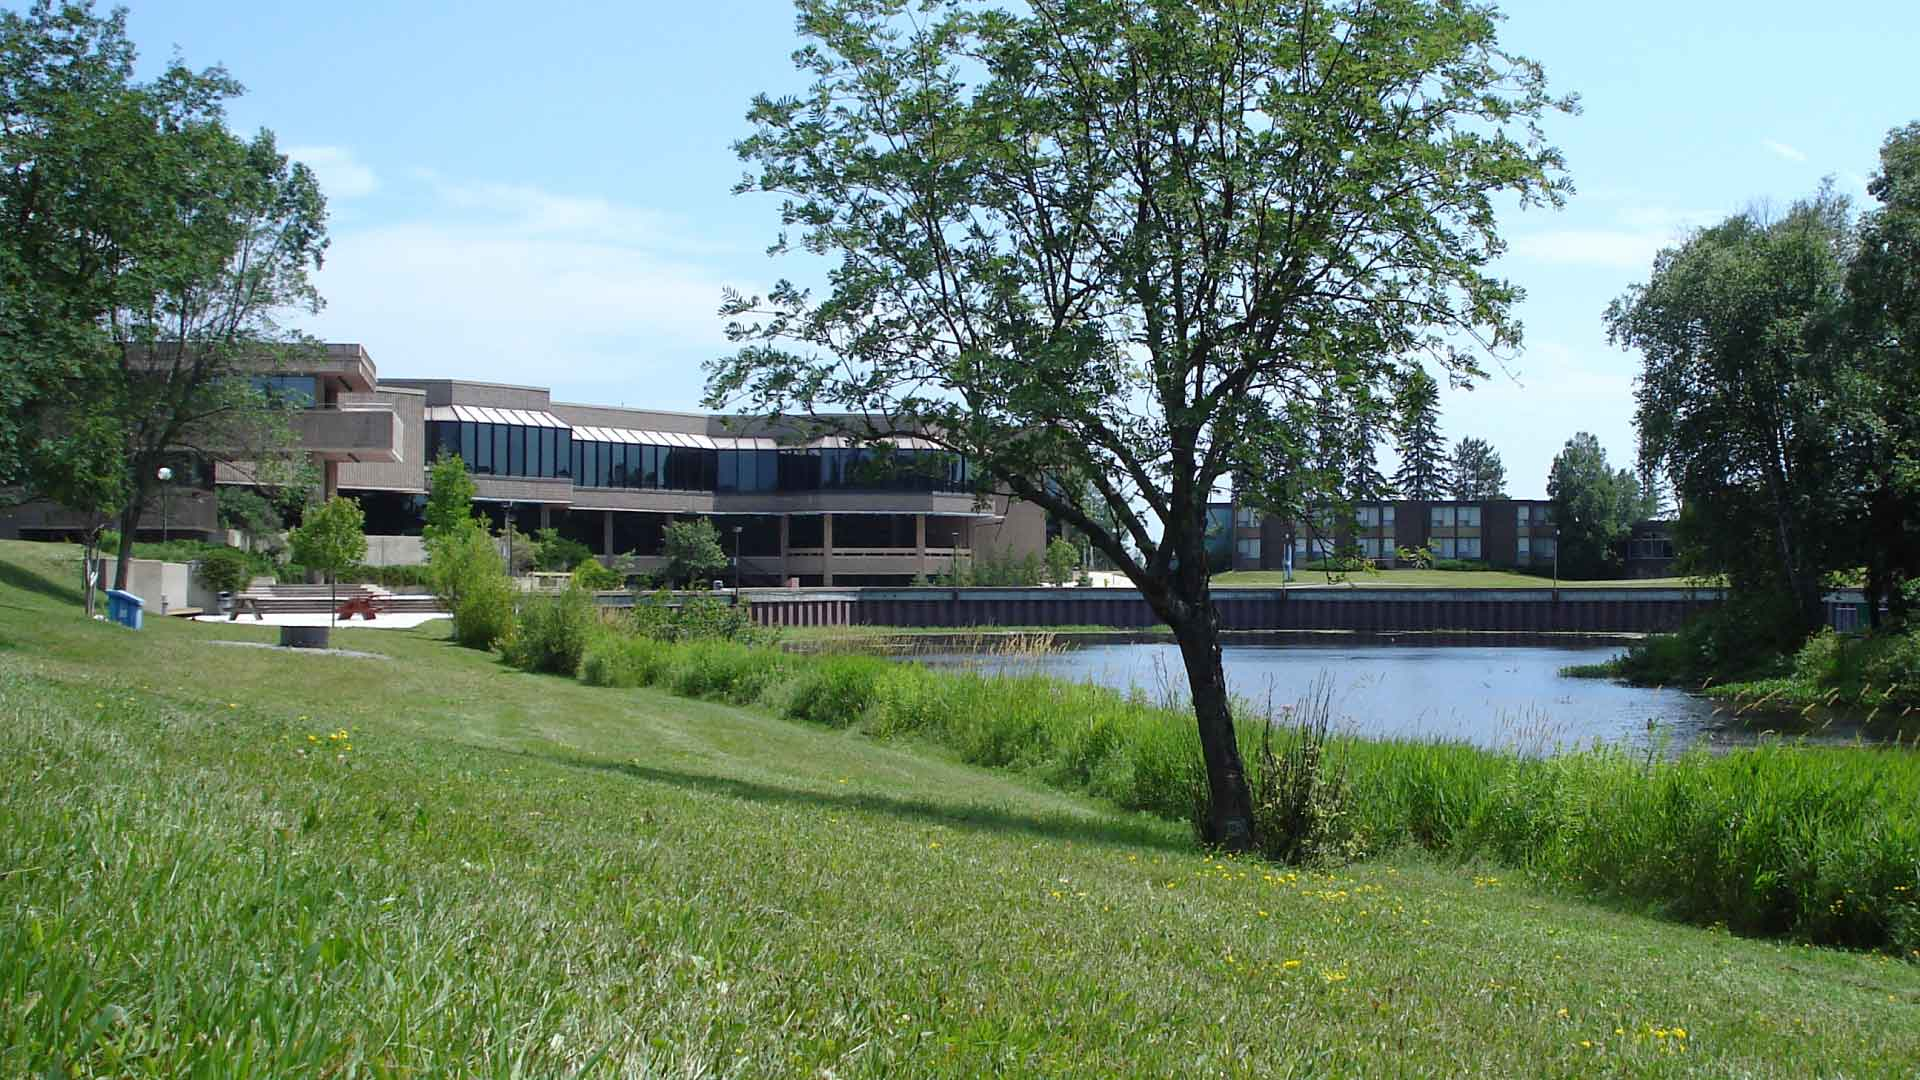 Pond and buildings on Lakehead University campus